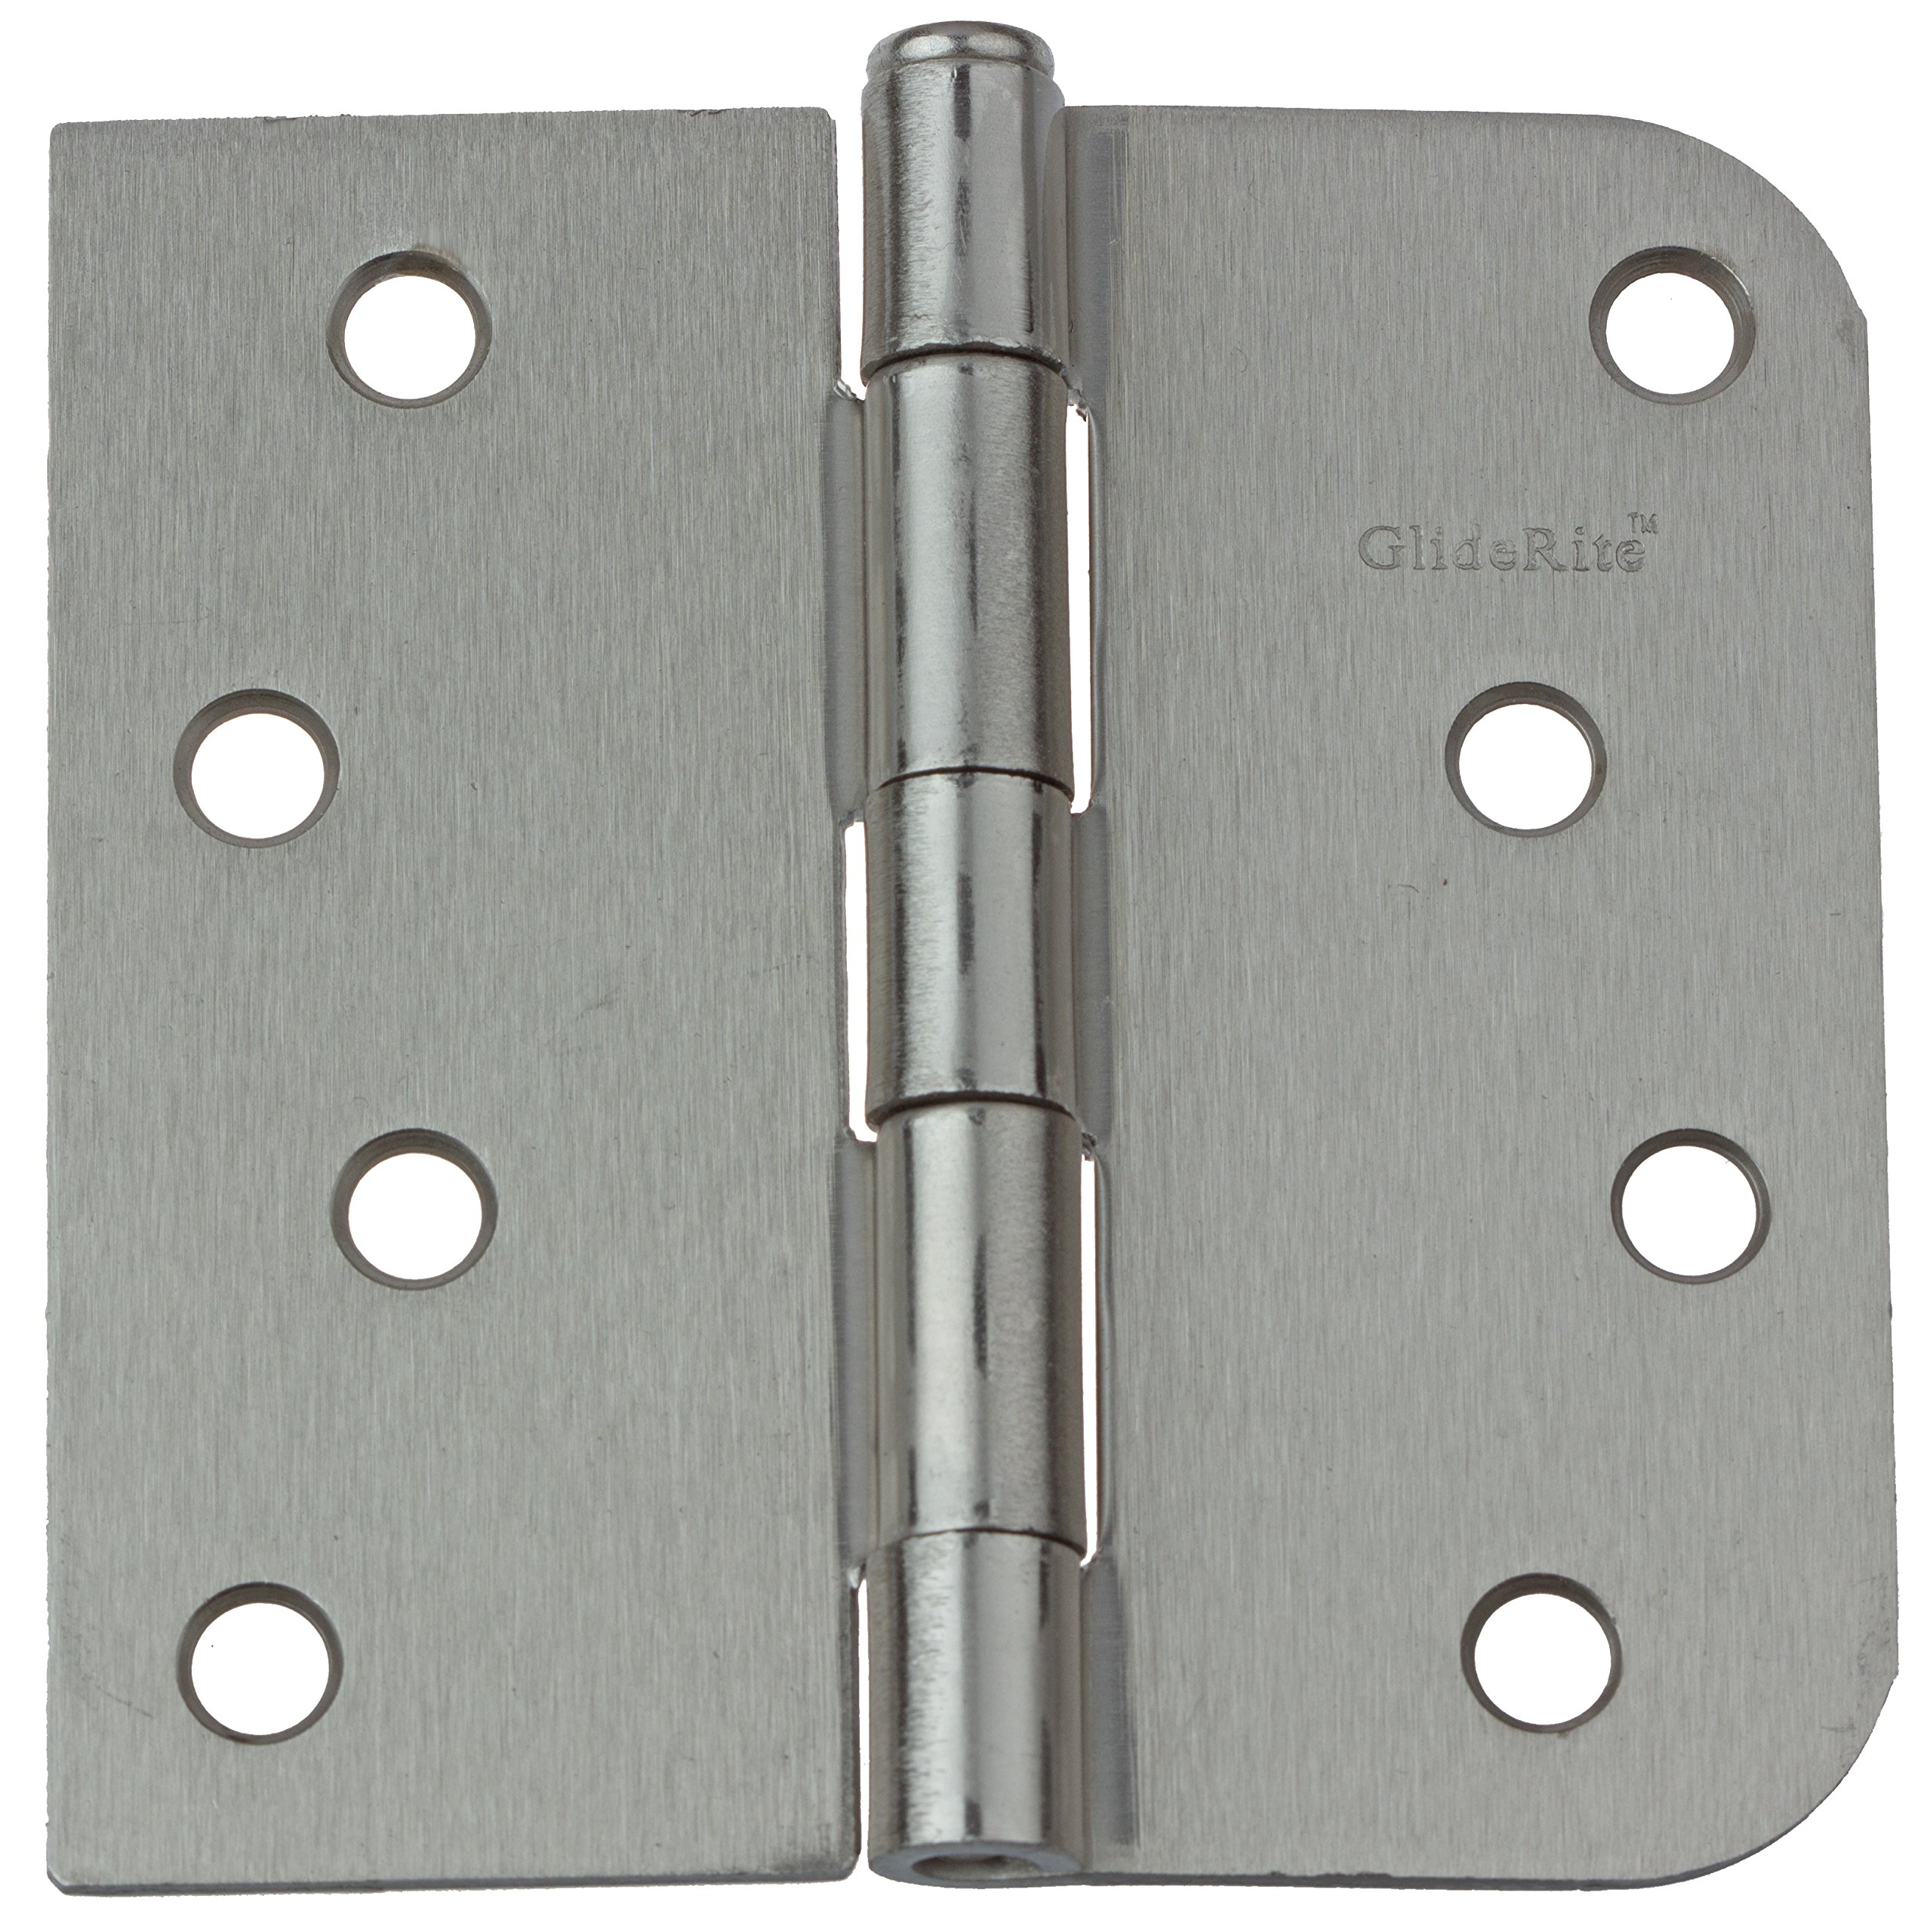 GlideRite Hardware 4000-SQ-58-SN-12 4 inch steel Door Hinges 0.625 Radius & Square Corners Satin Nickel Finish 12 Pack